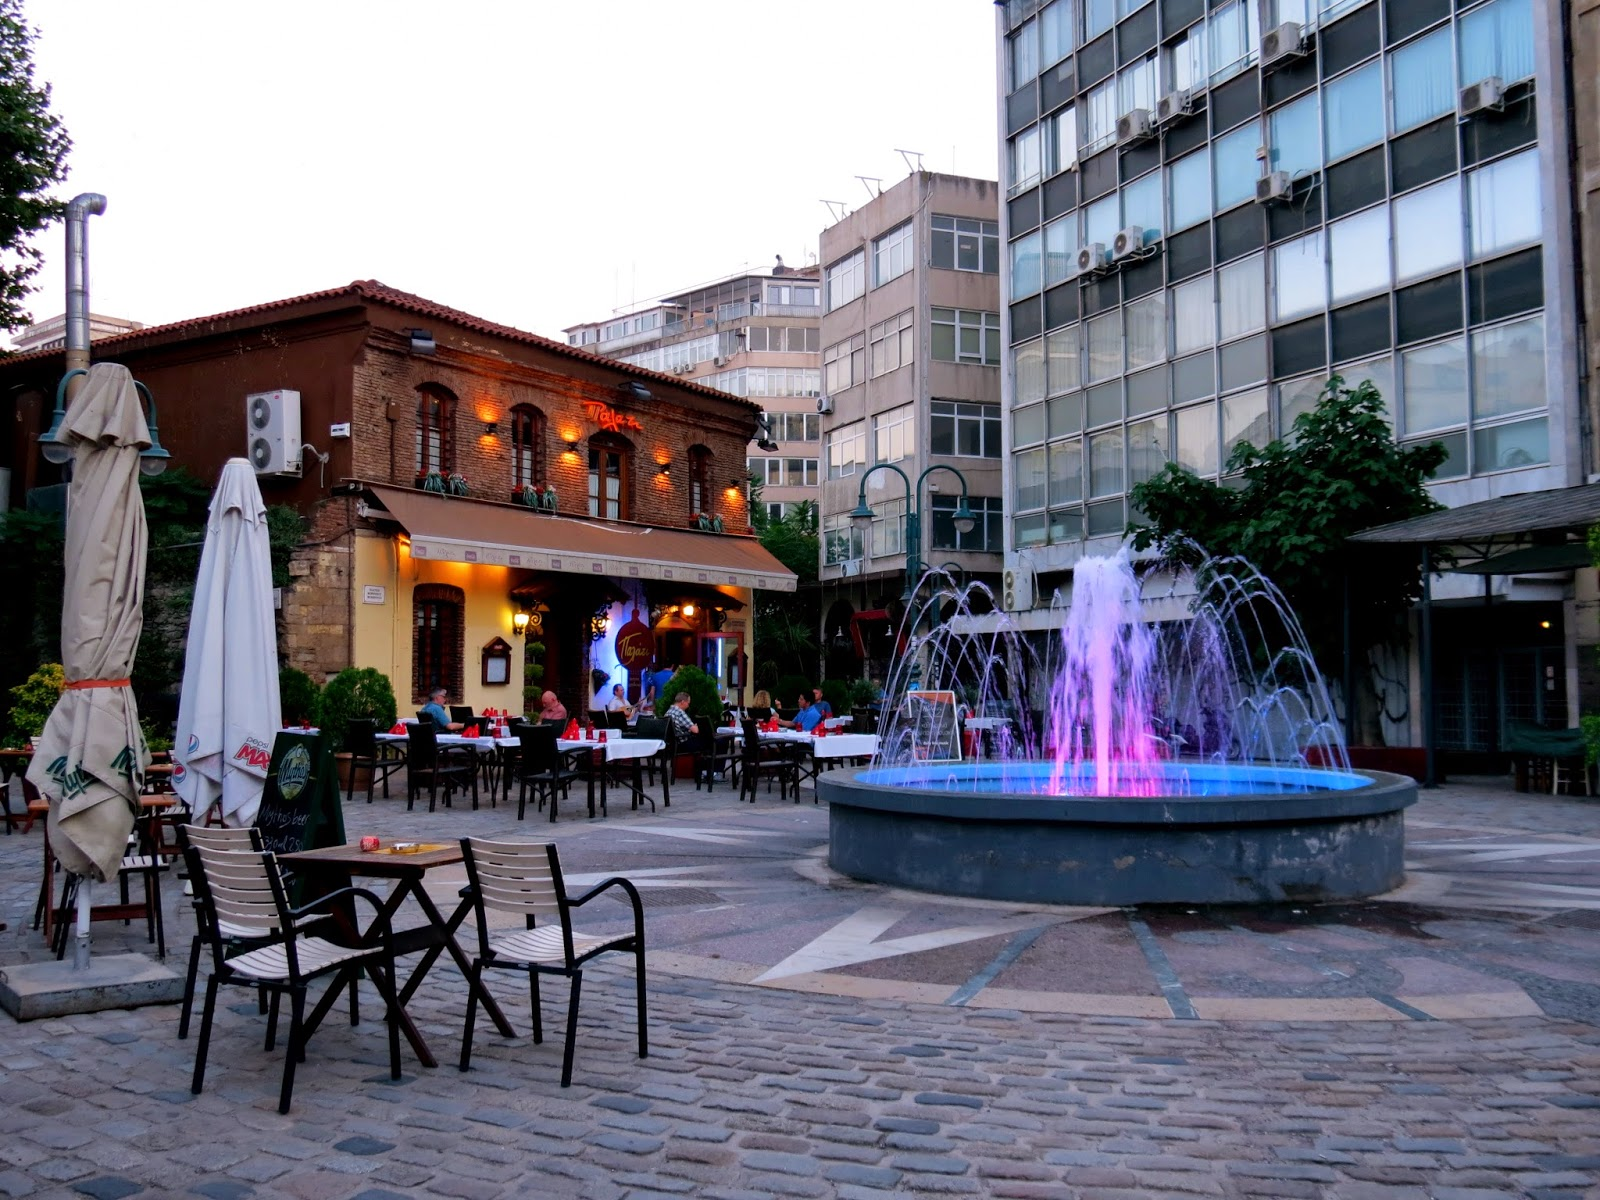 thessaloniki fountain